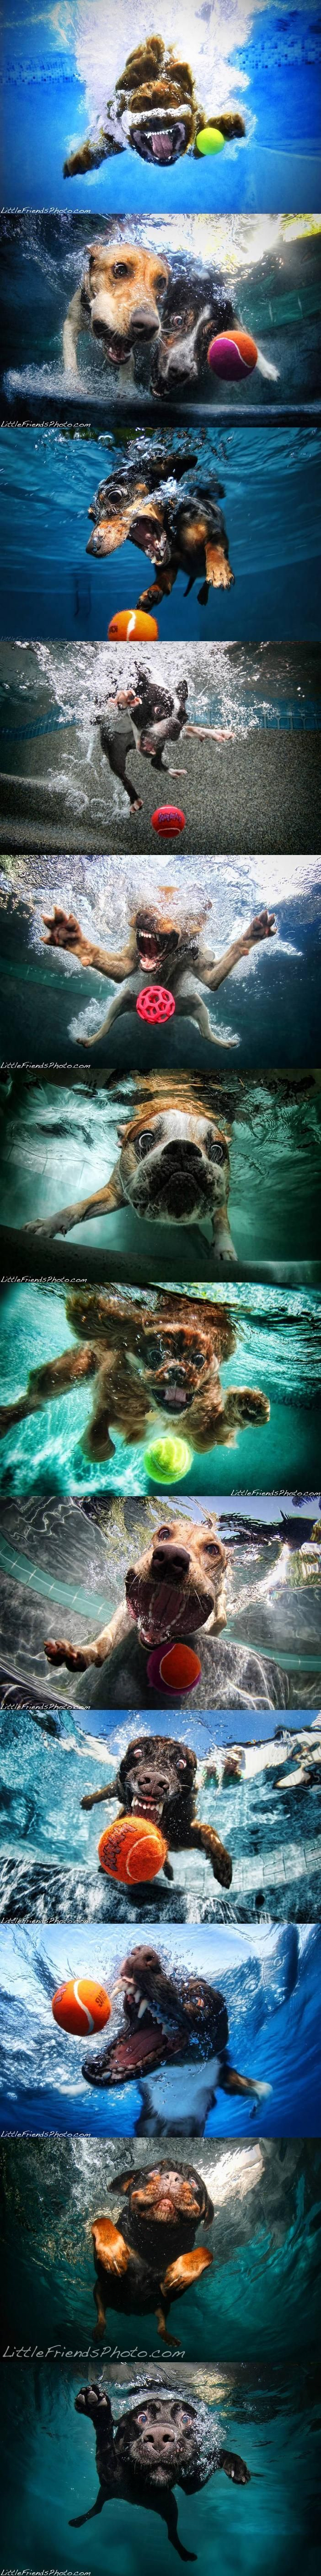 Underwater Dogs are always funny. Happy Friday! #TSE